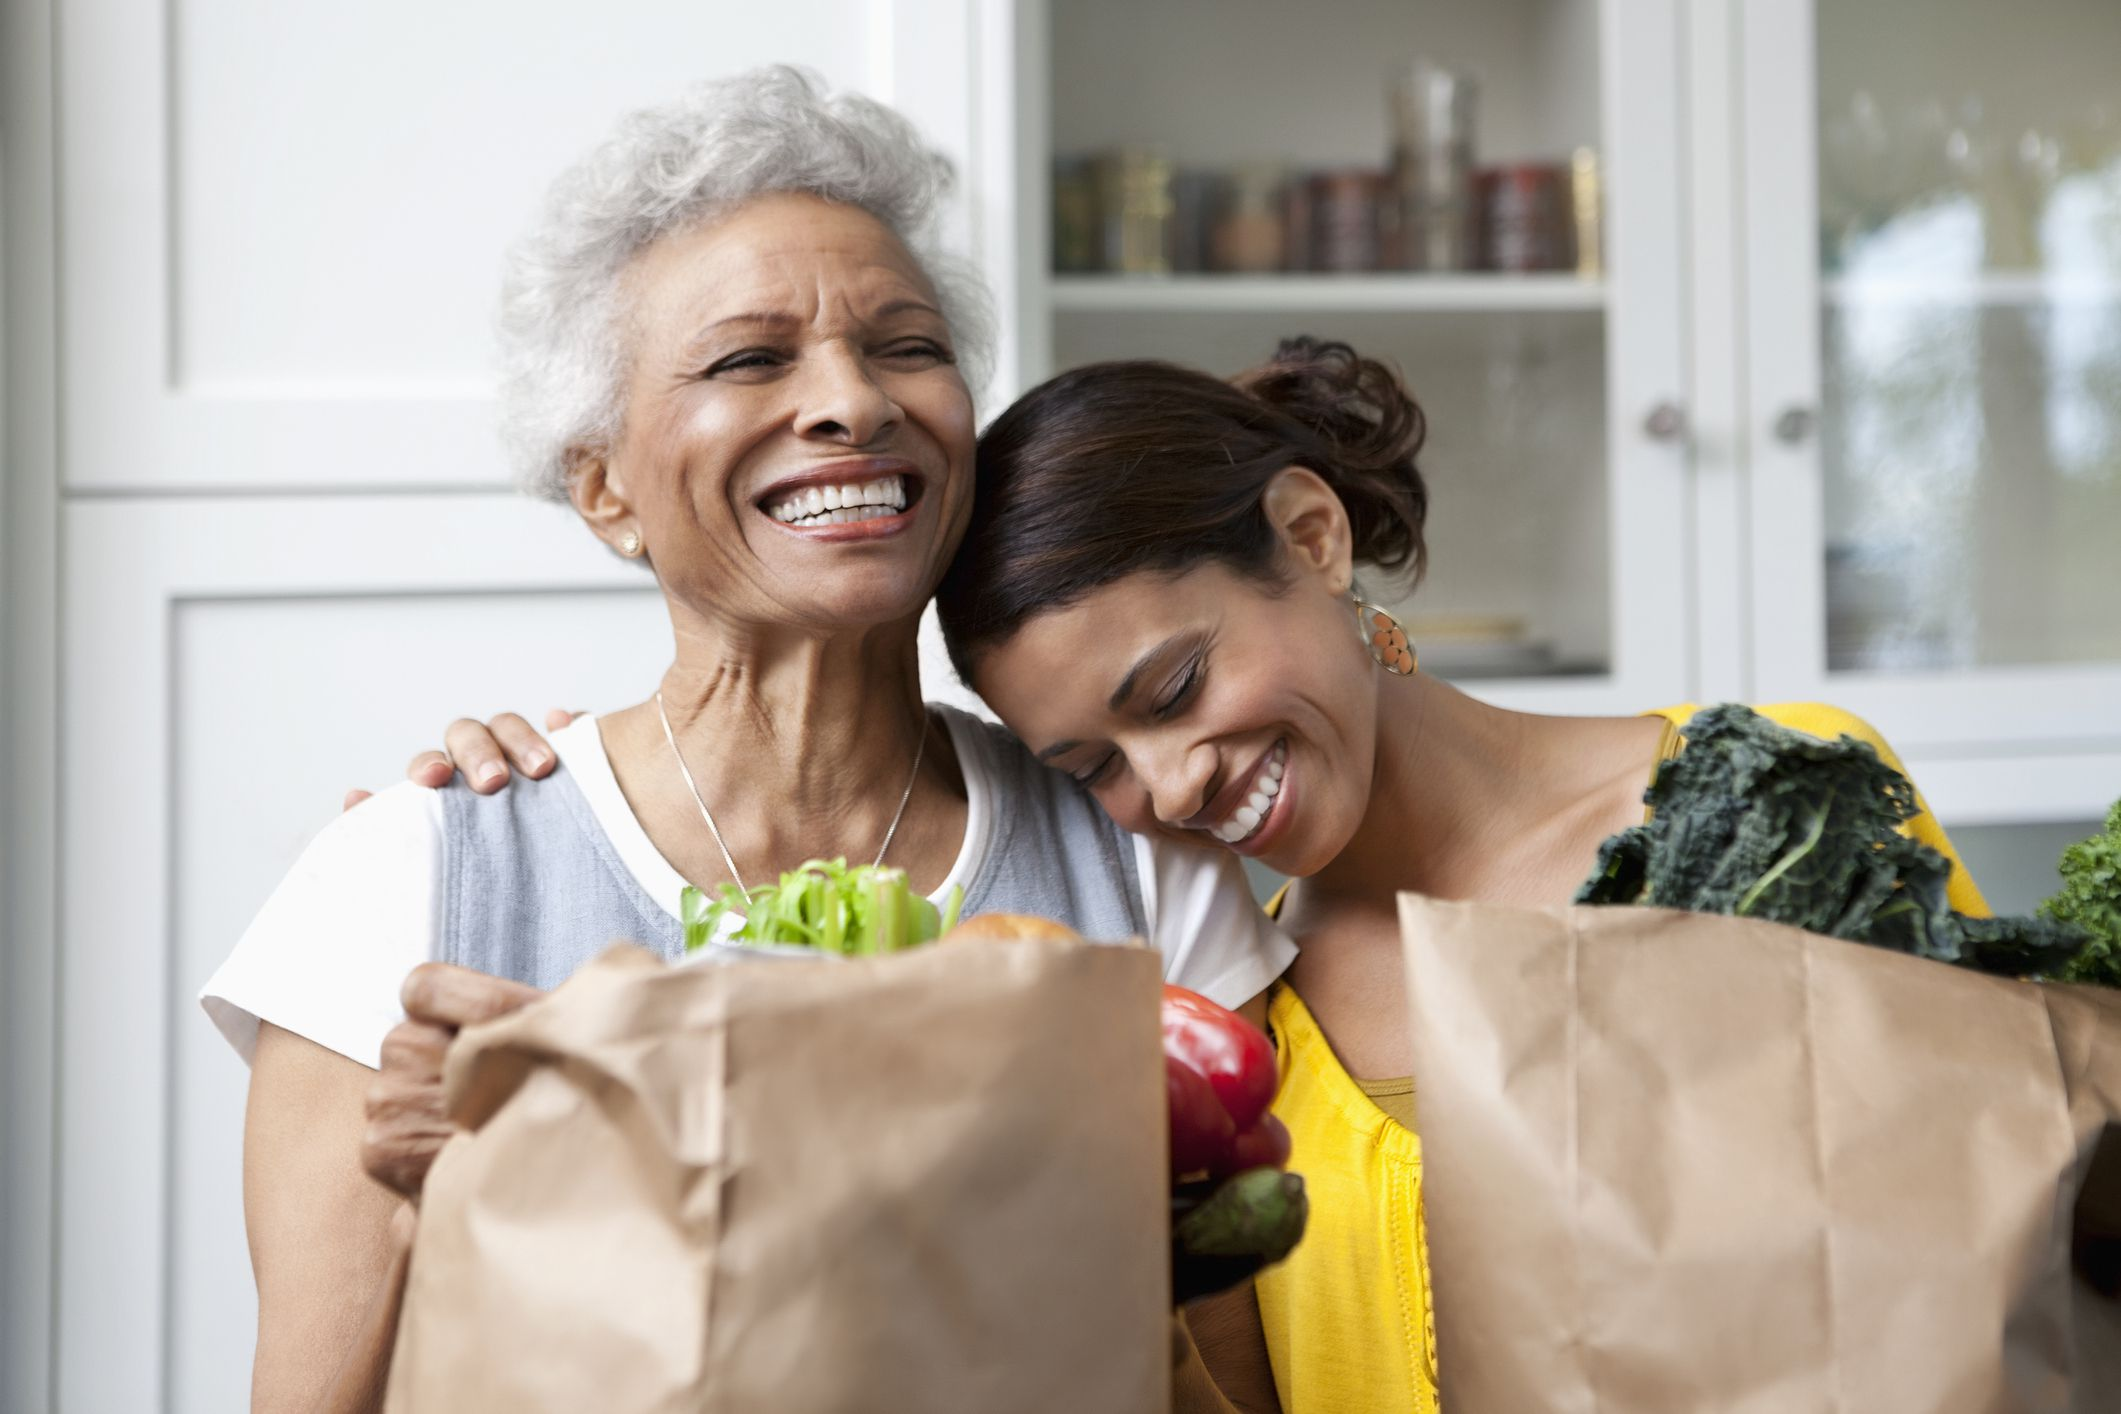 Medicare and Medicaid Look into Food Subsidies to Keep You Healthy